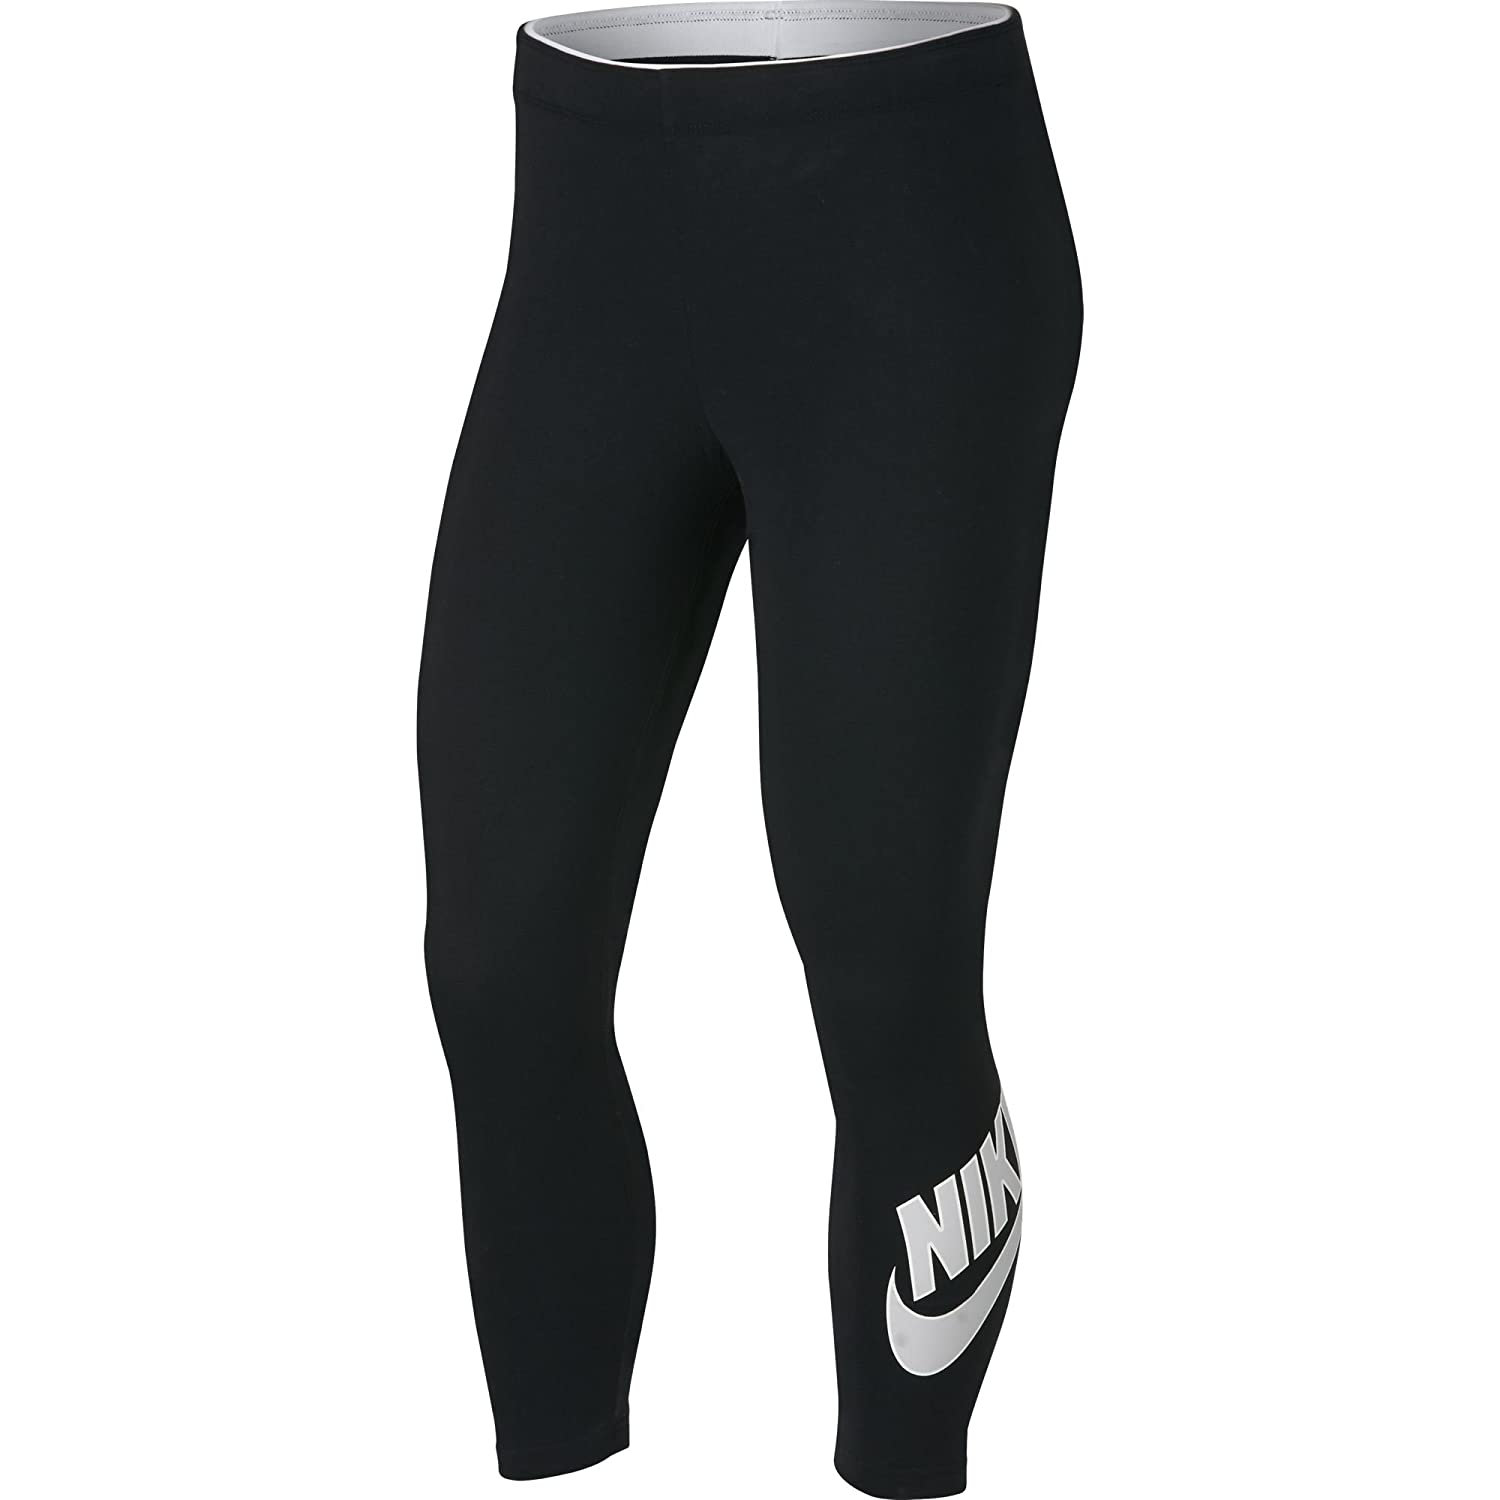 NIKE Women's Sportswear Club Futura 3/4 Leggings Nike Apparel (Sporting Goods) 929178-P